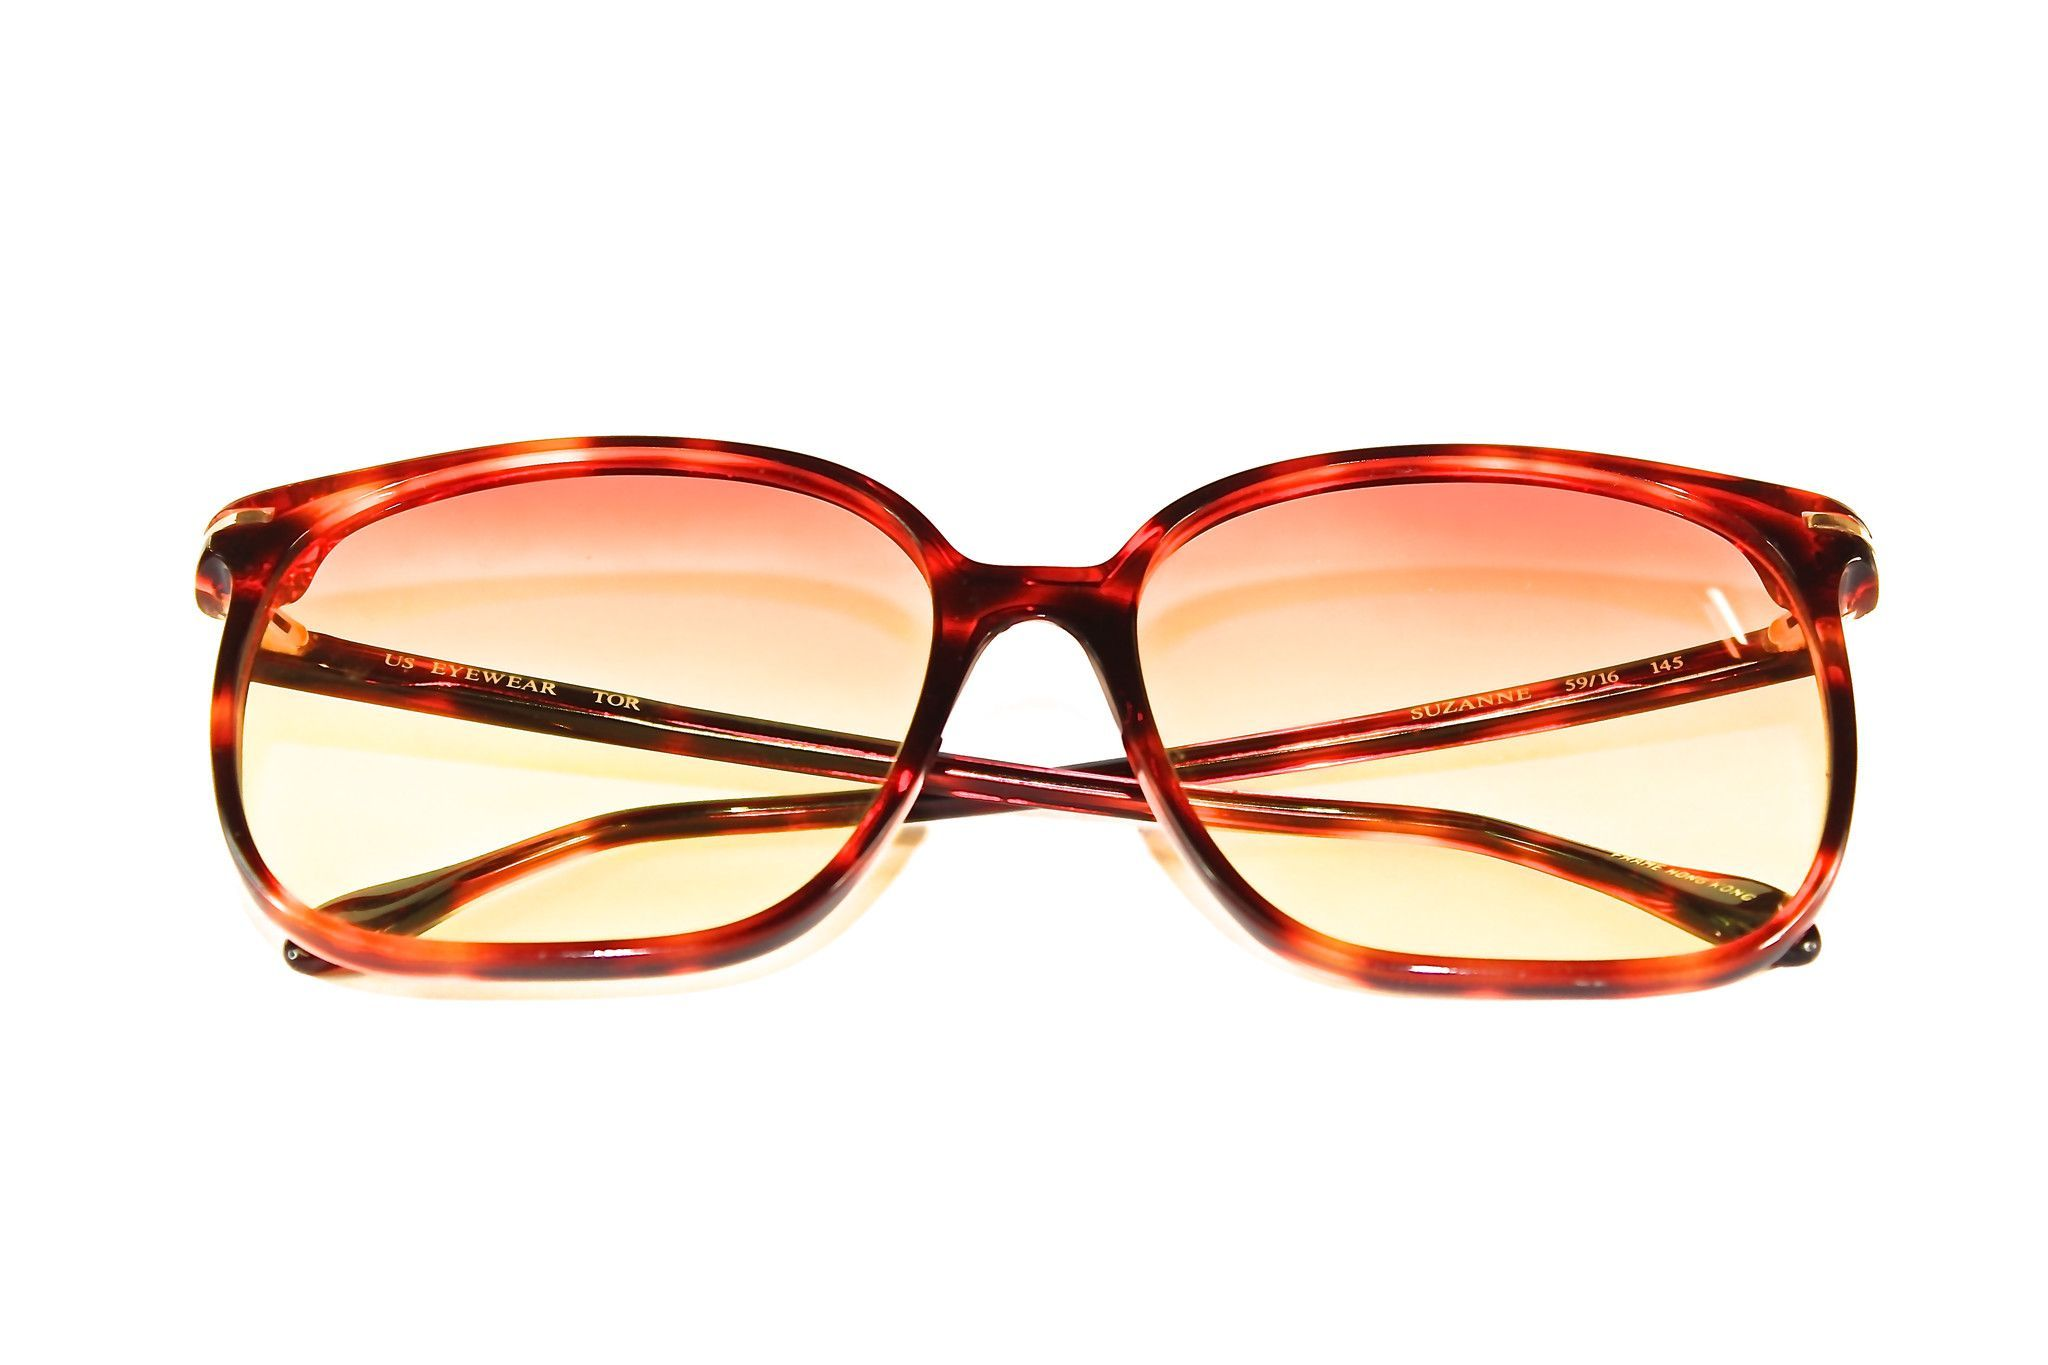 d32f59e859 U.S. Eyewear - Suzanne Sunset Tortoise Sunglasses Deep Red tortoise square  frame best for summer days